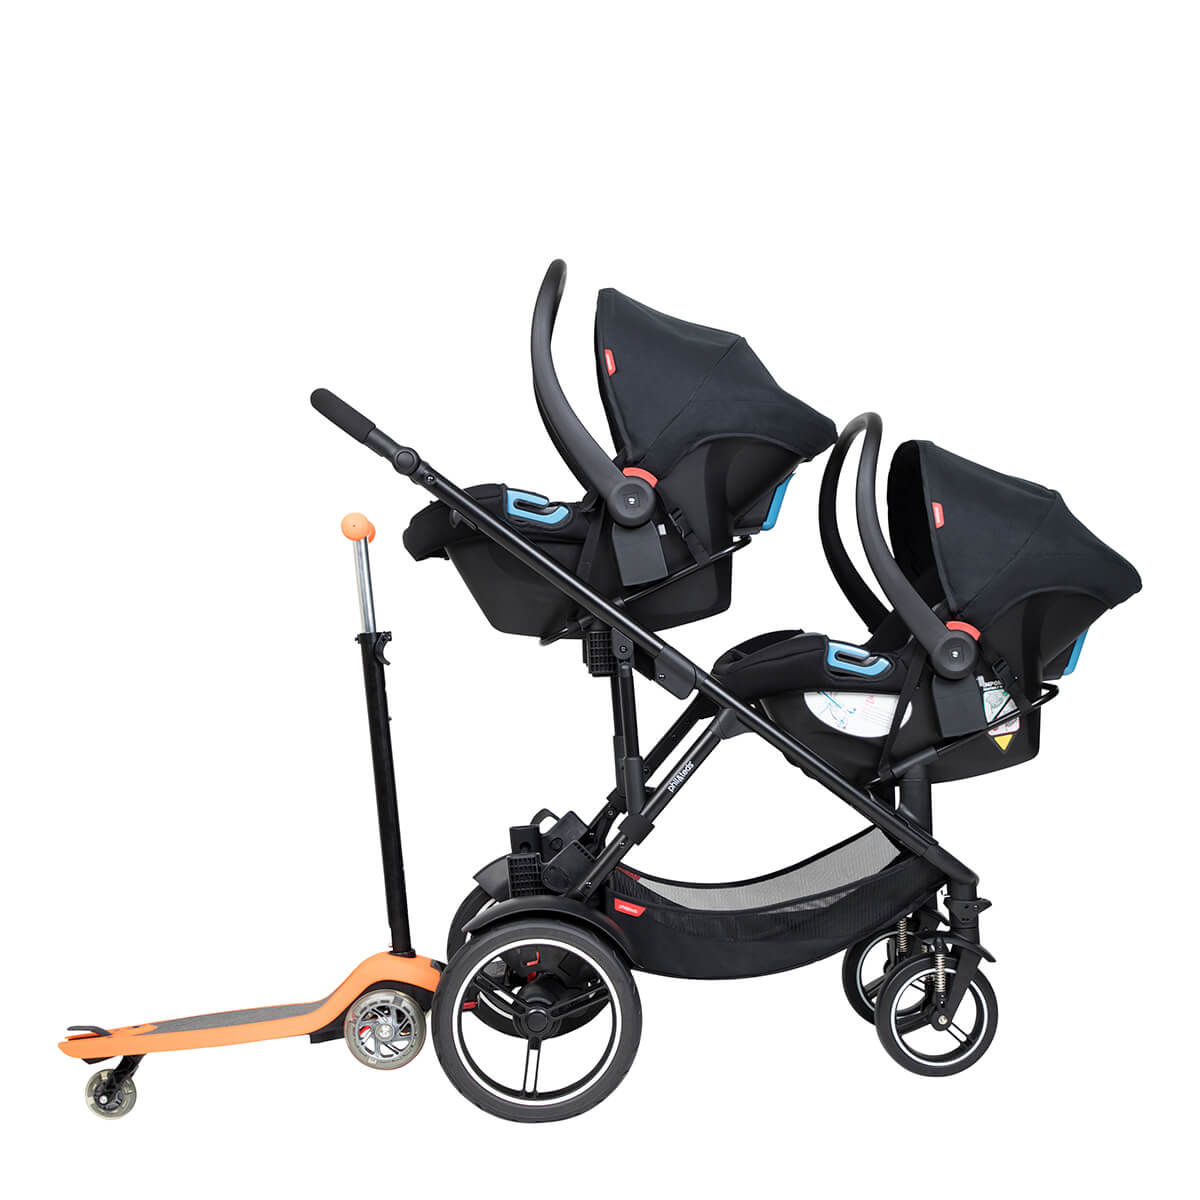 https://cdn.accentuate.io/4509913579597/19466498146498/philteds-voyager-buggy-with-double-travel-systems-and-freerider-stroller-board-in-the-rear-v1626485630149.jpg?1200x1200